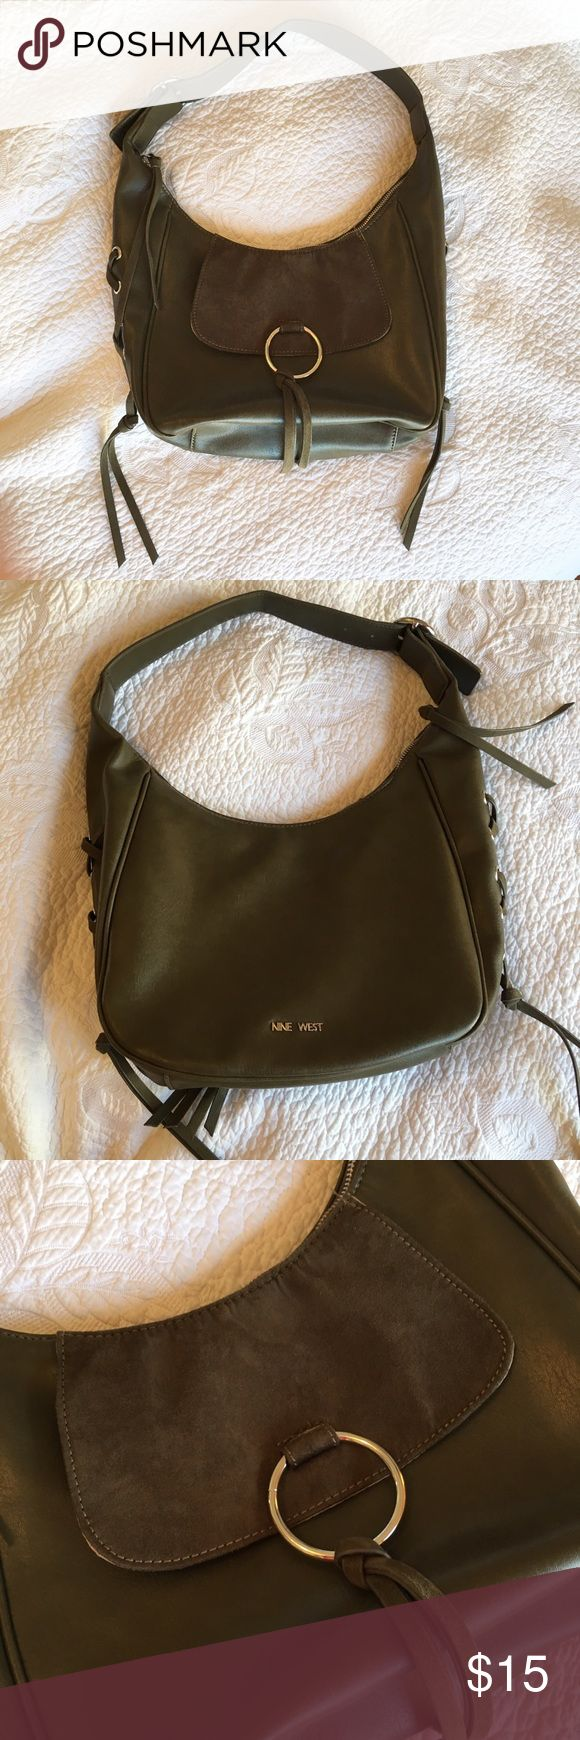 Nine West Olive Green Shoulder Bag The outside is in great condition other than the slight bend in the shoulder strap from hanging on a hook for a while. There are a good number of stains on the inside lining. This is a very stylish bag that has details that remind me of certain Chloe bags. Nine West Bags Shoulder Bags